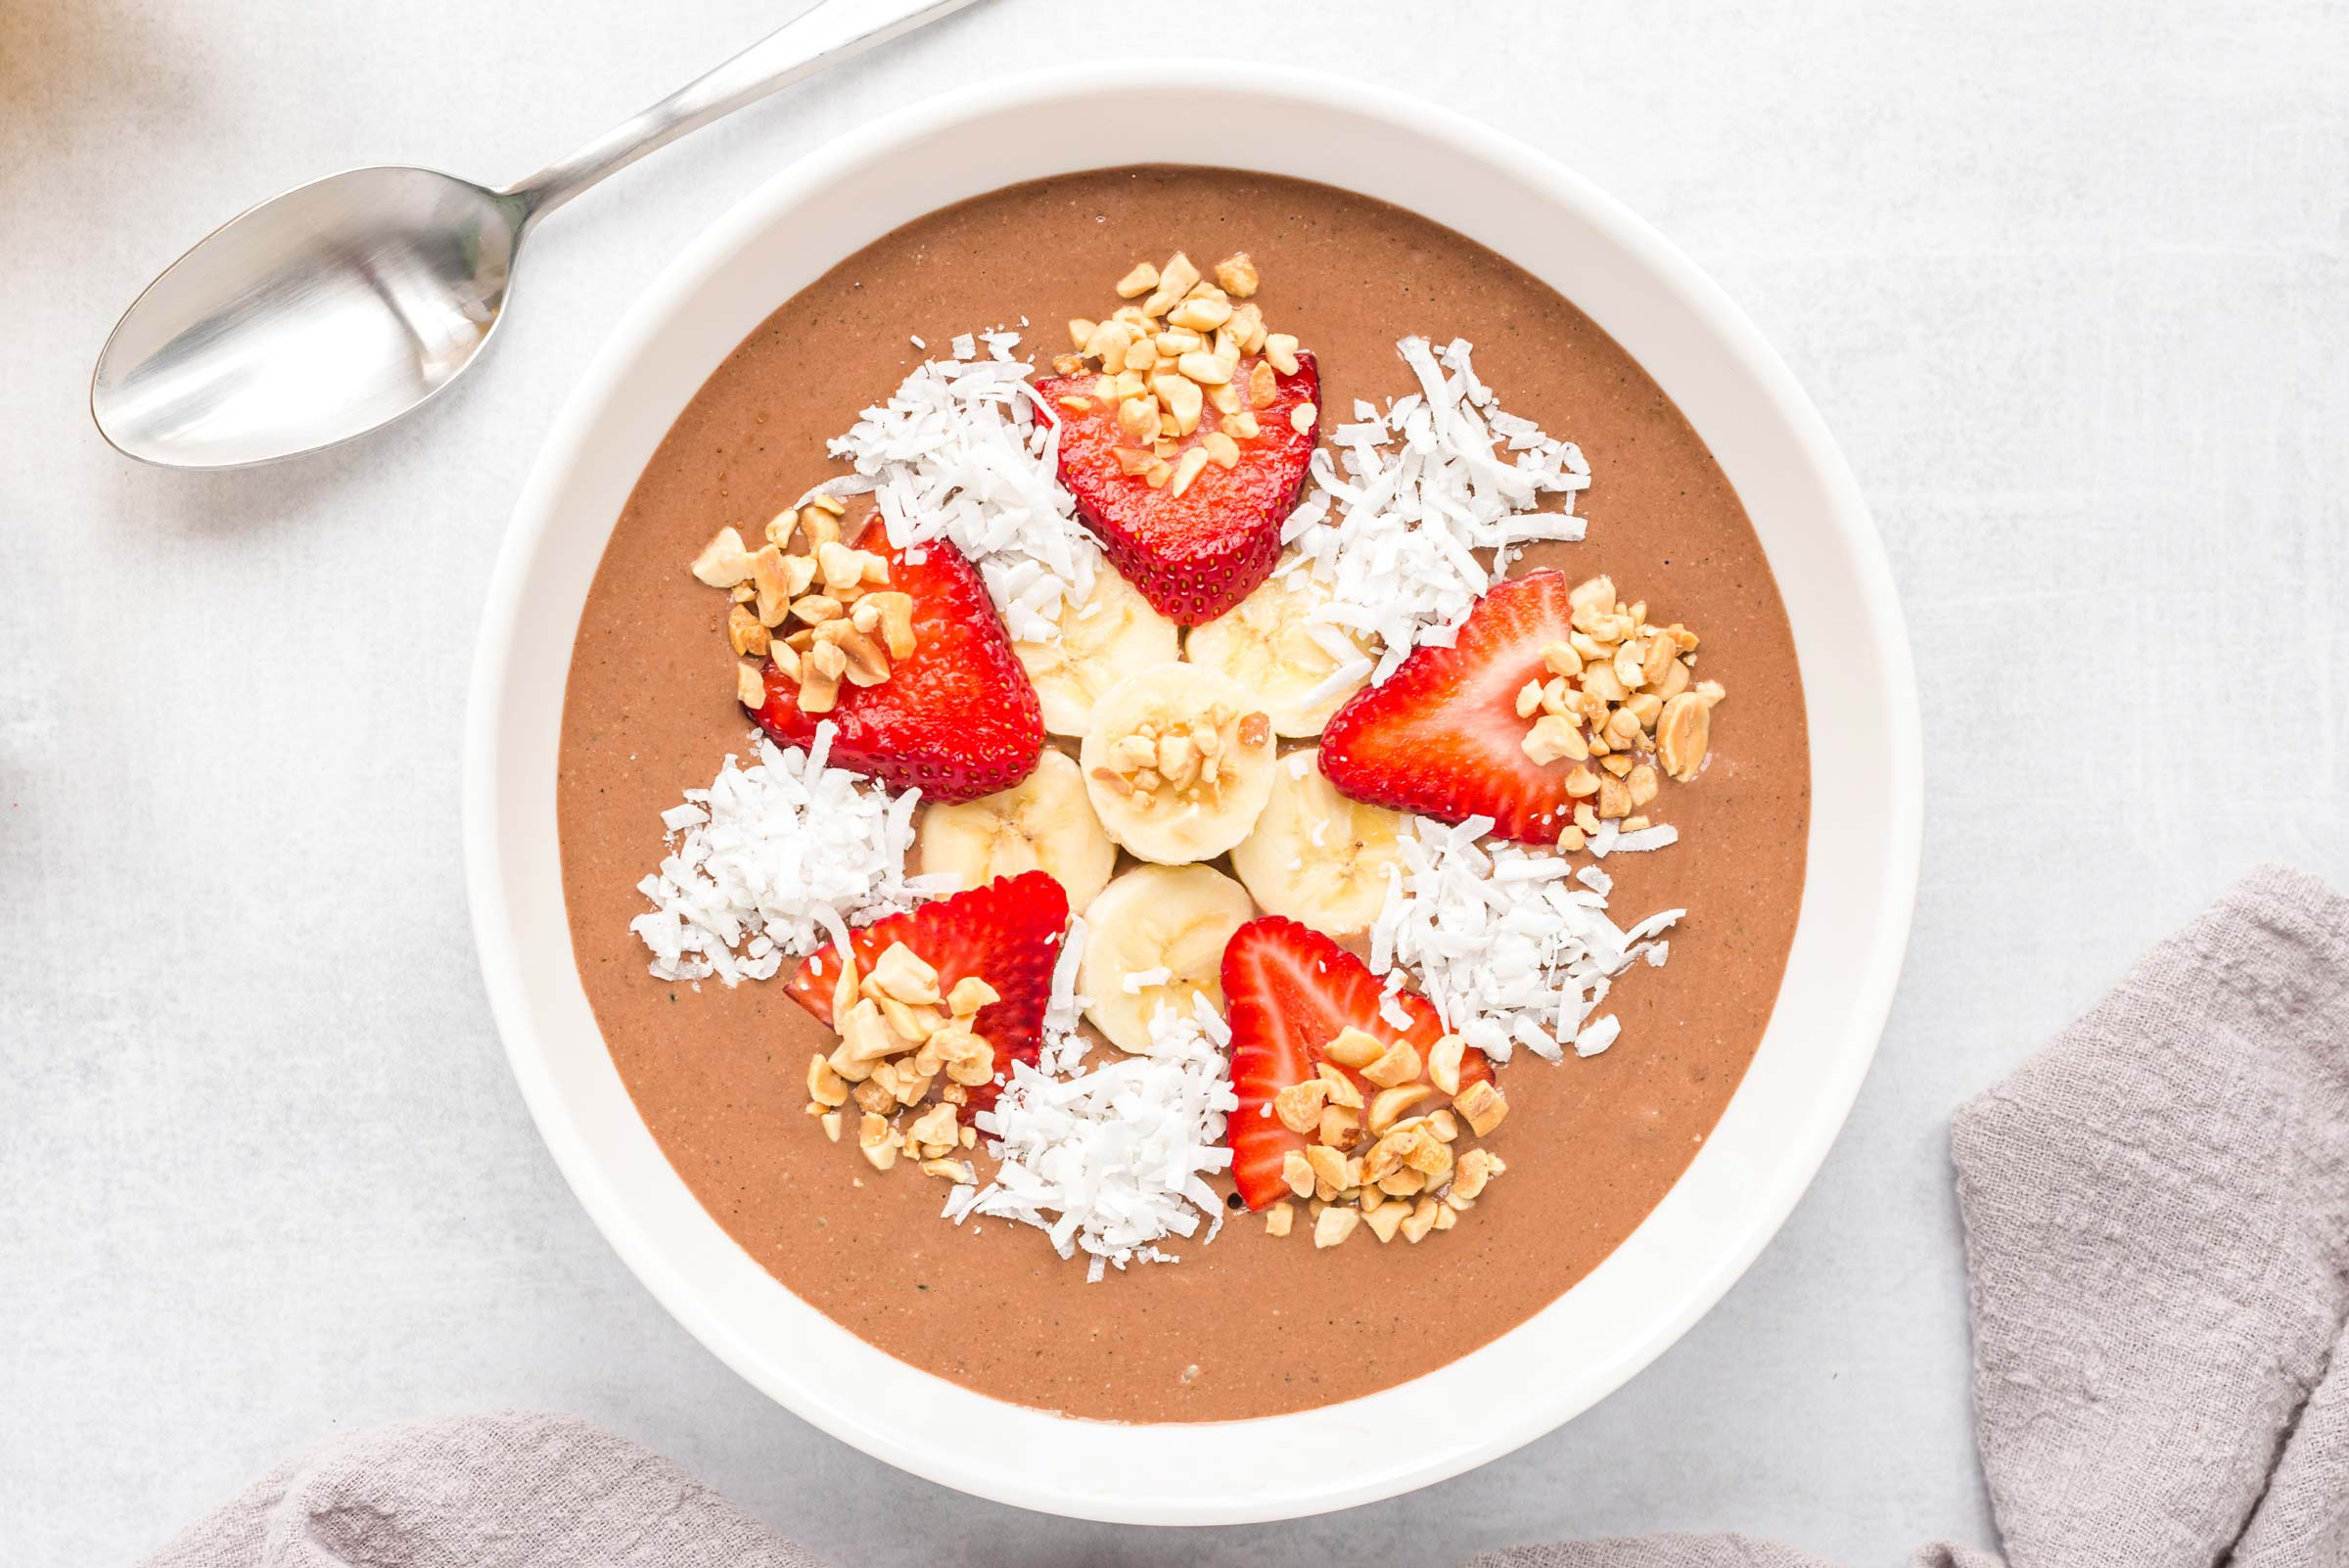 Banana split dairy free chocolate smoothie bowl